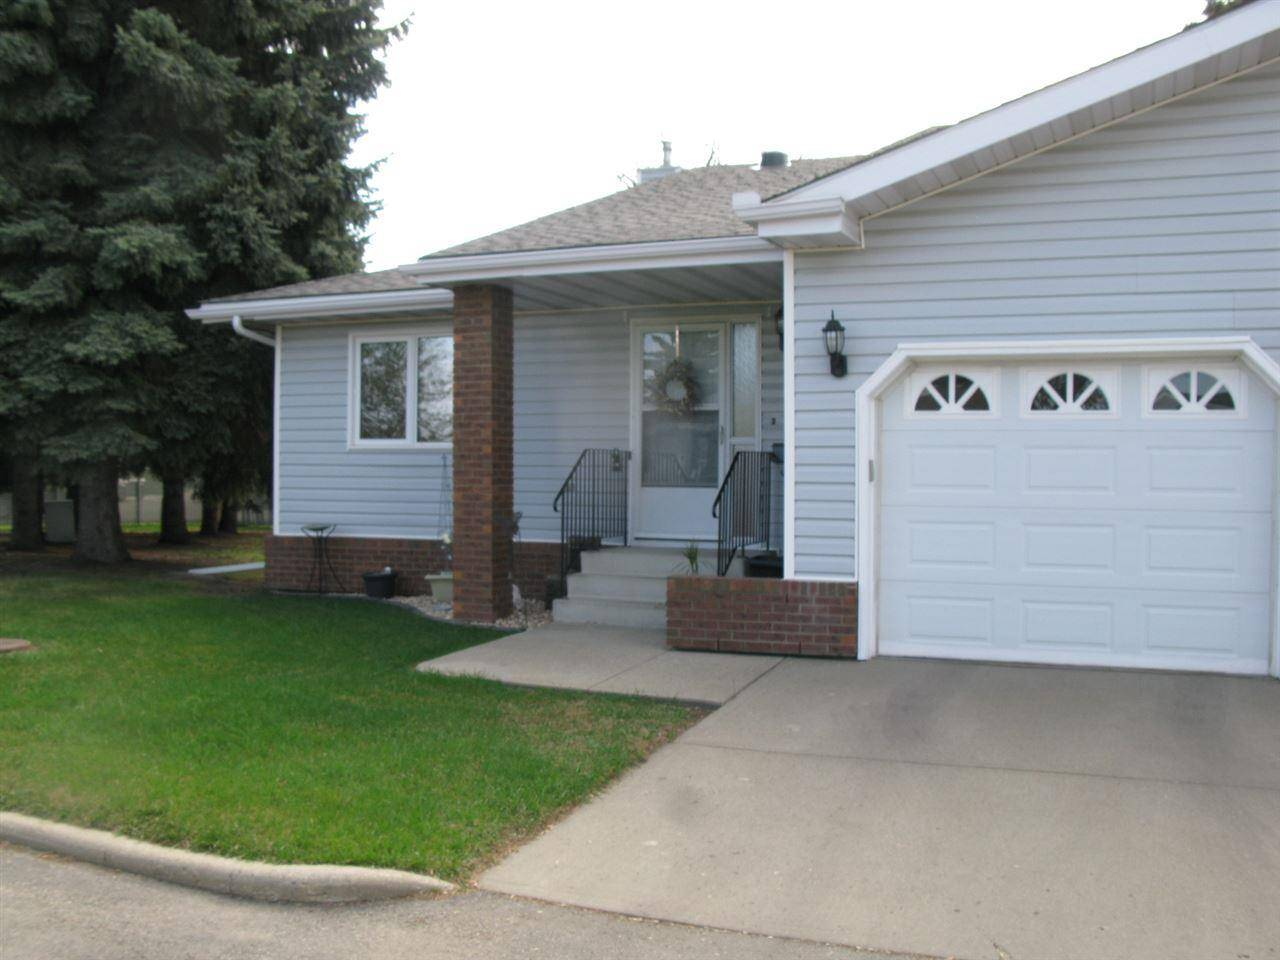 Buliding: 20 Georgian Way, Sherwood Park, AB